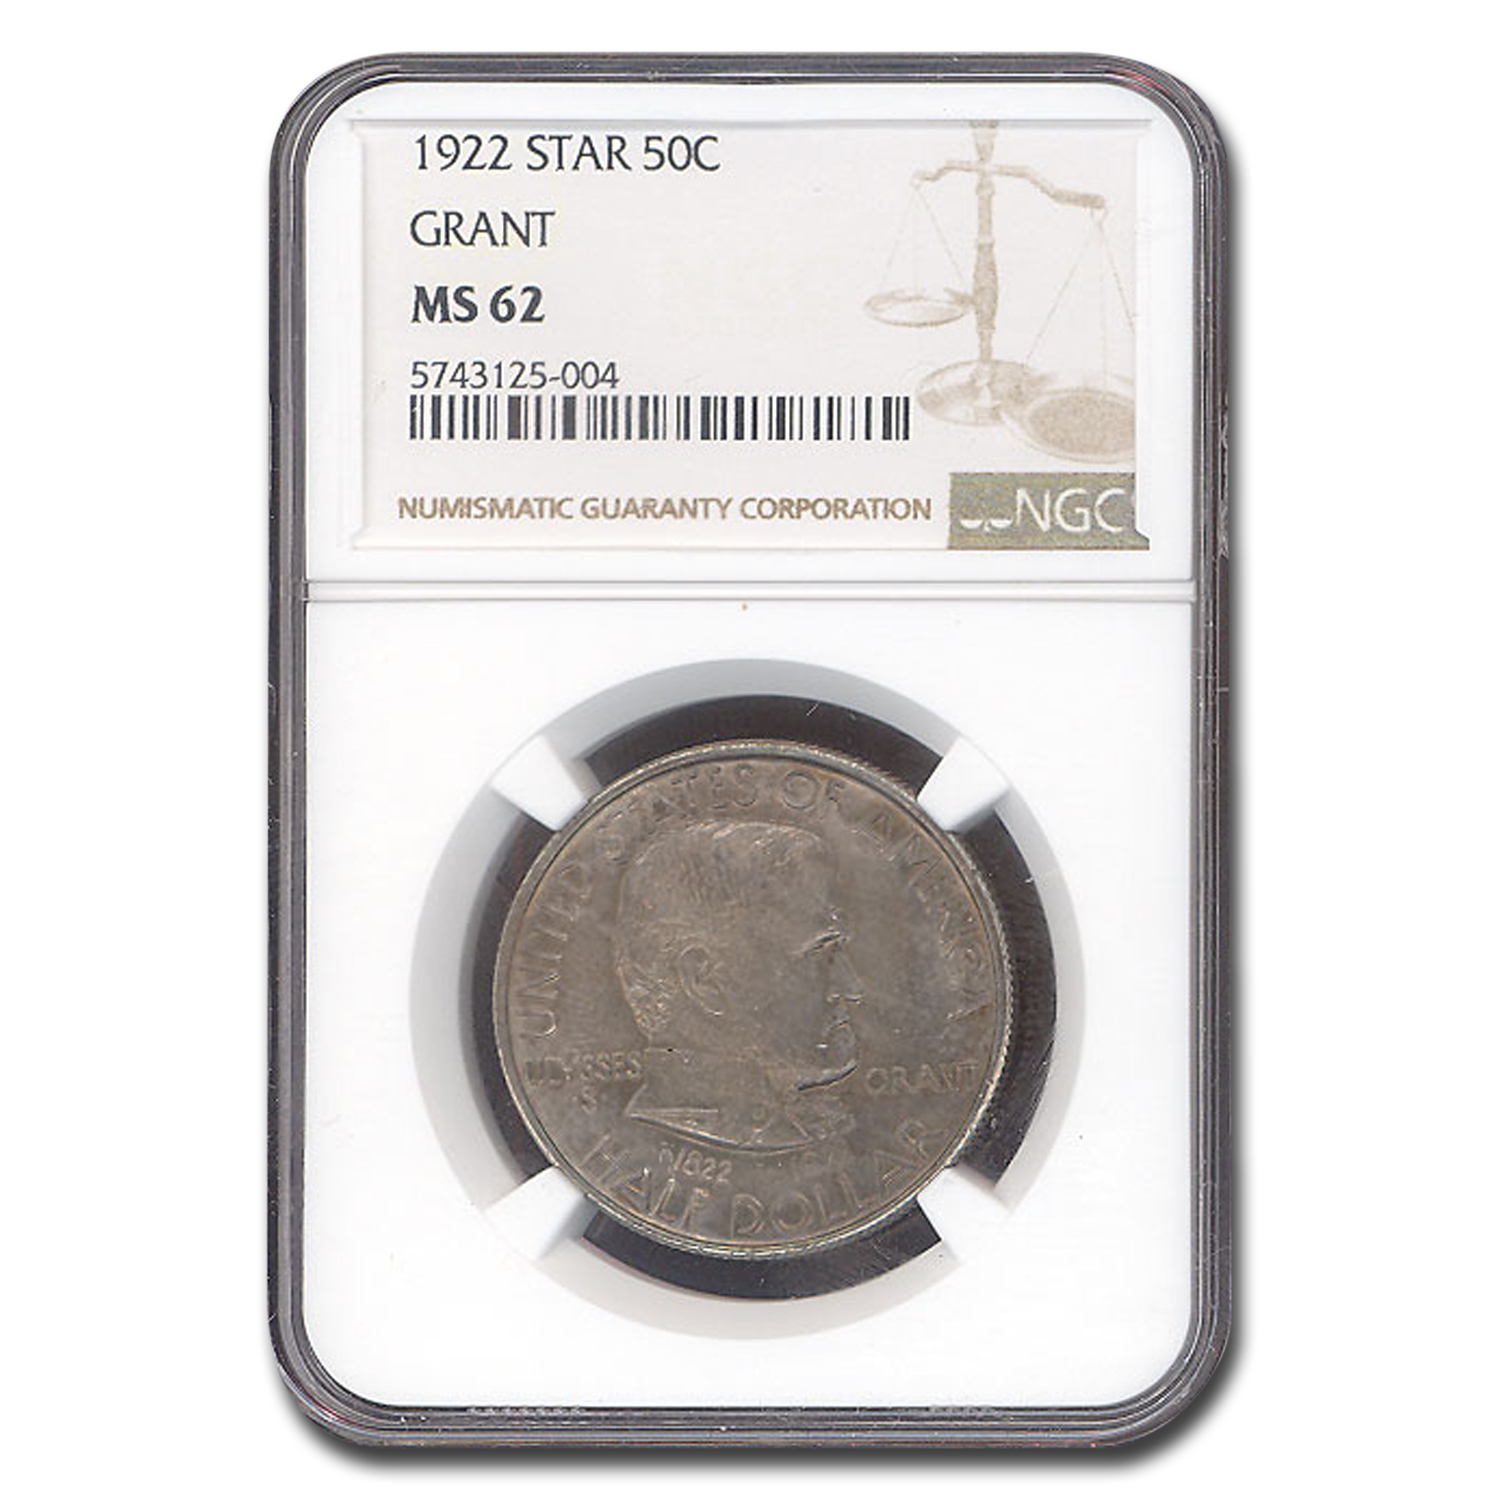 1922 Grant Memorial Half Dollar w/Star MS-62 NGC